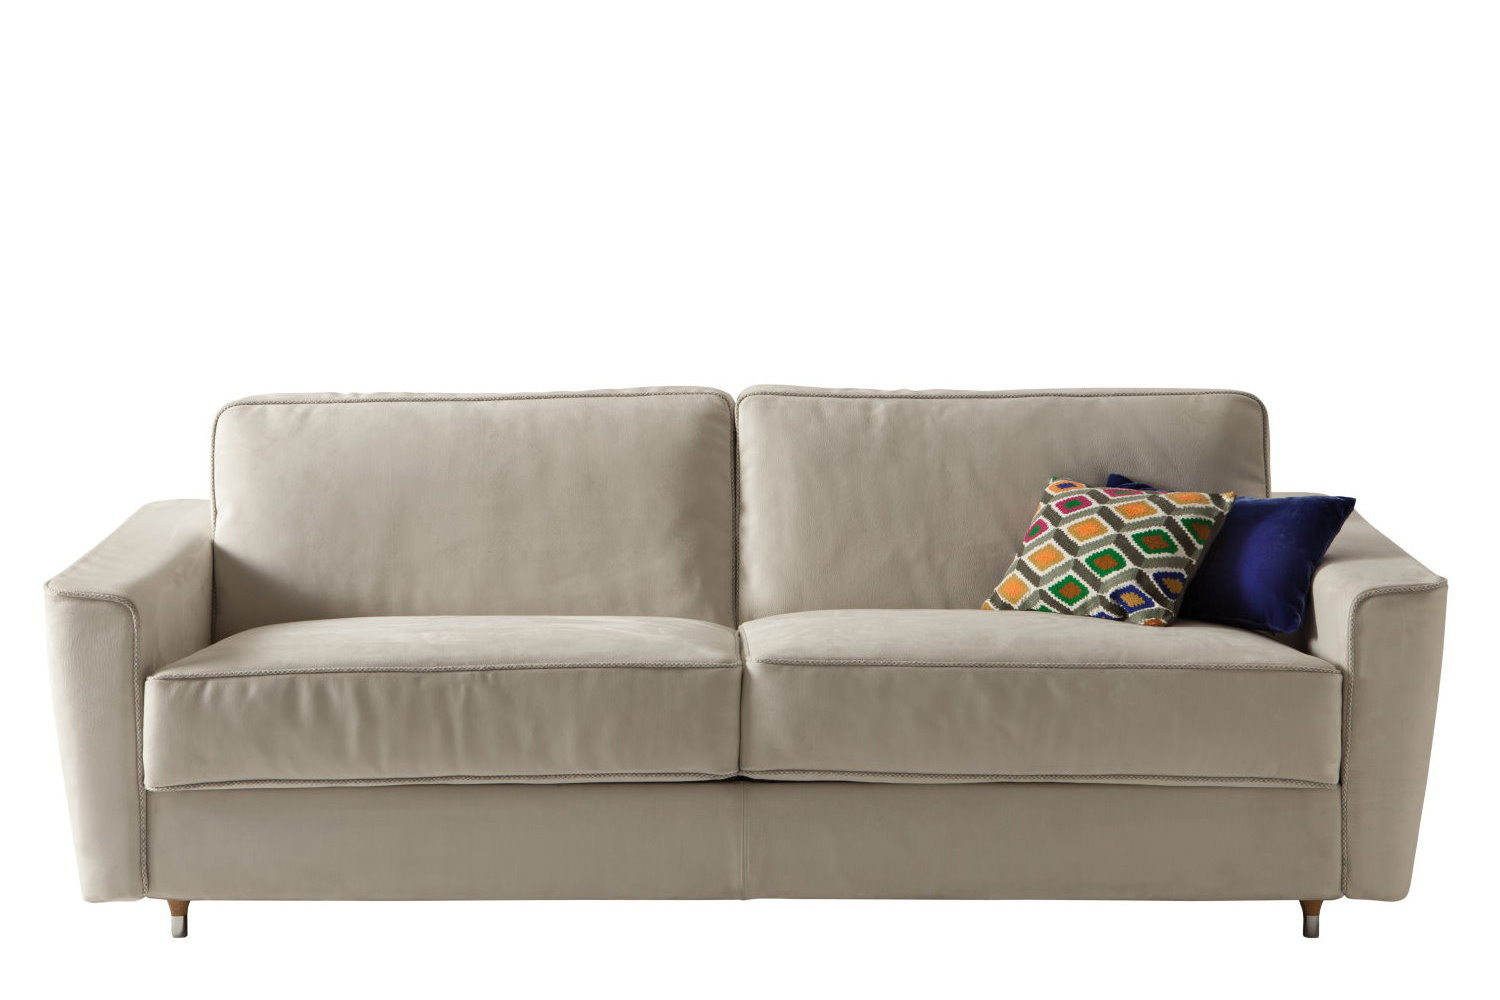 Petrucciani made in italy sofa bed for Divano letto a elle